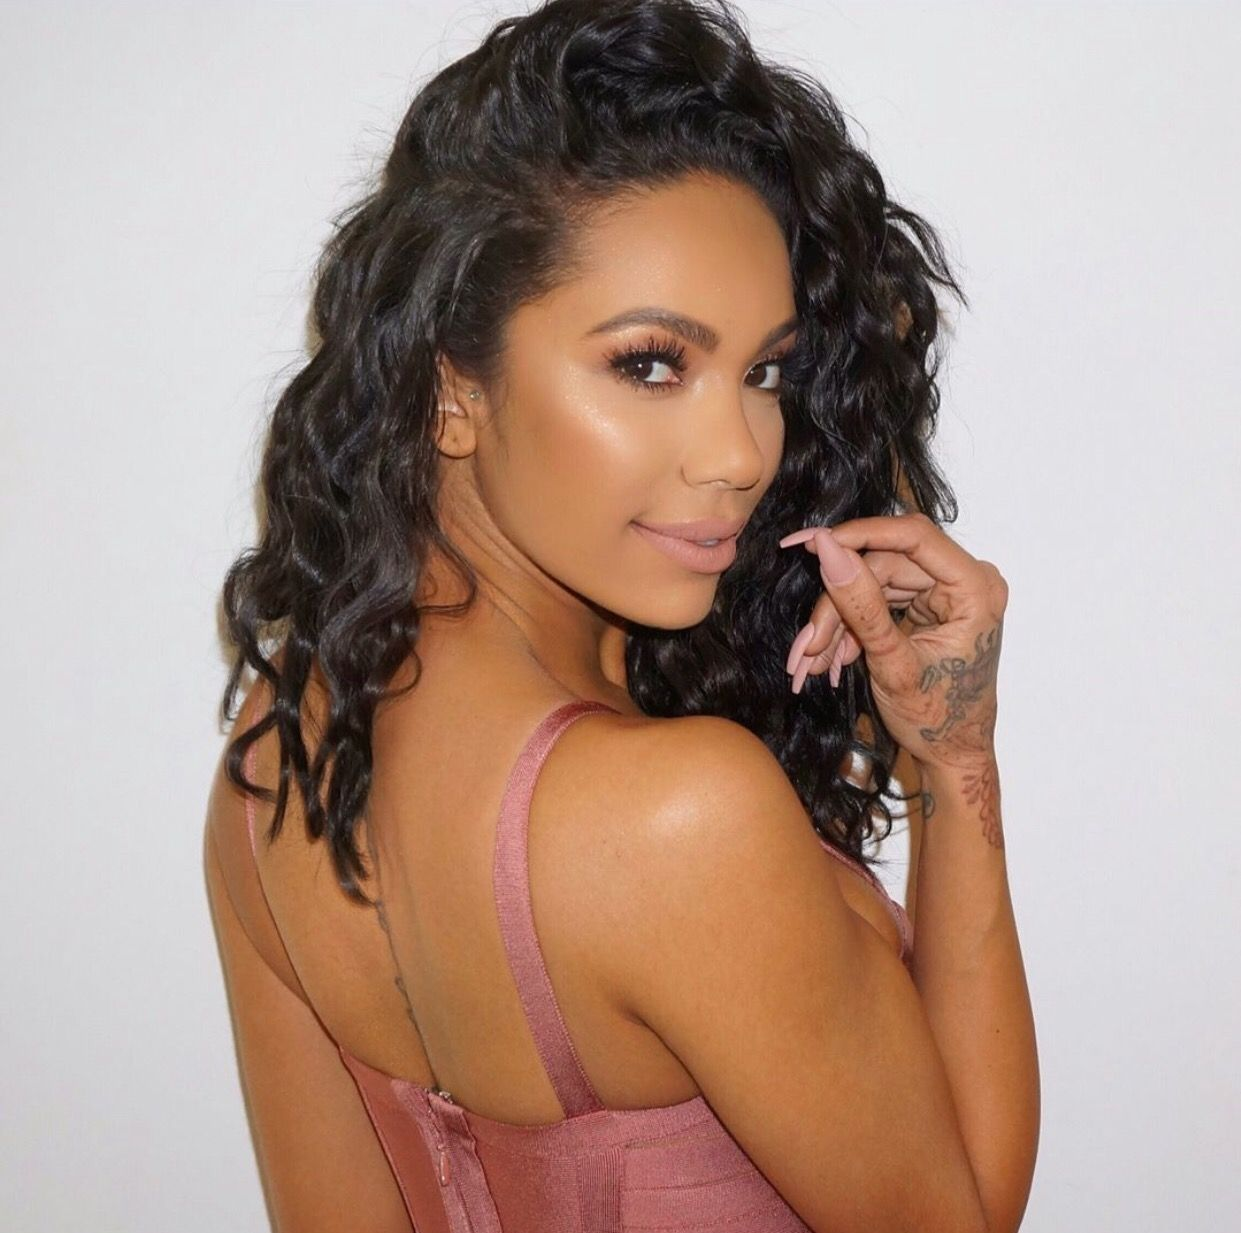 erica-mena-poses-together-with-her-daughter-blasting-a-hater-for-accusing-her-of-something-terrible